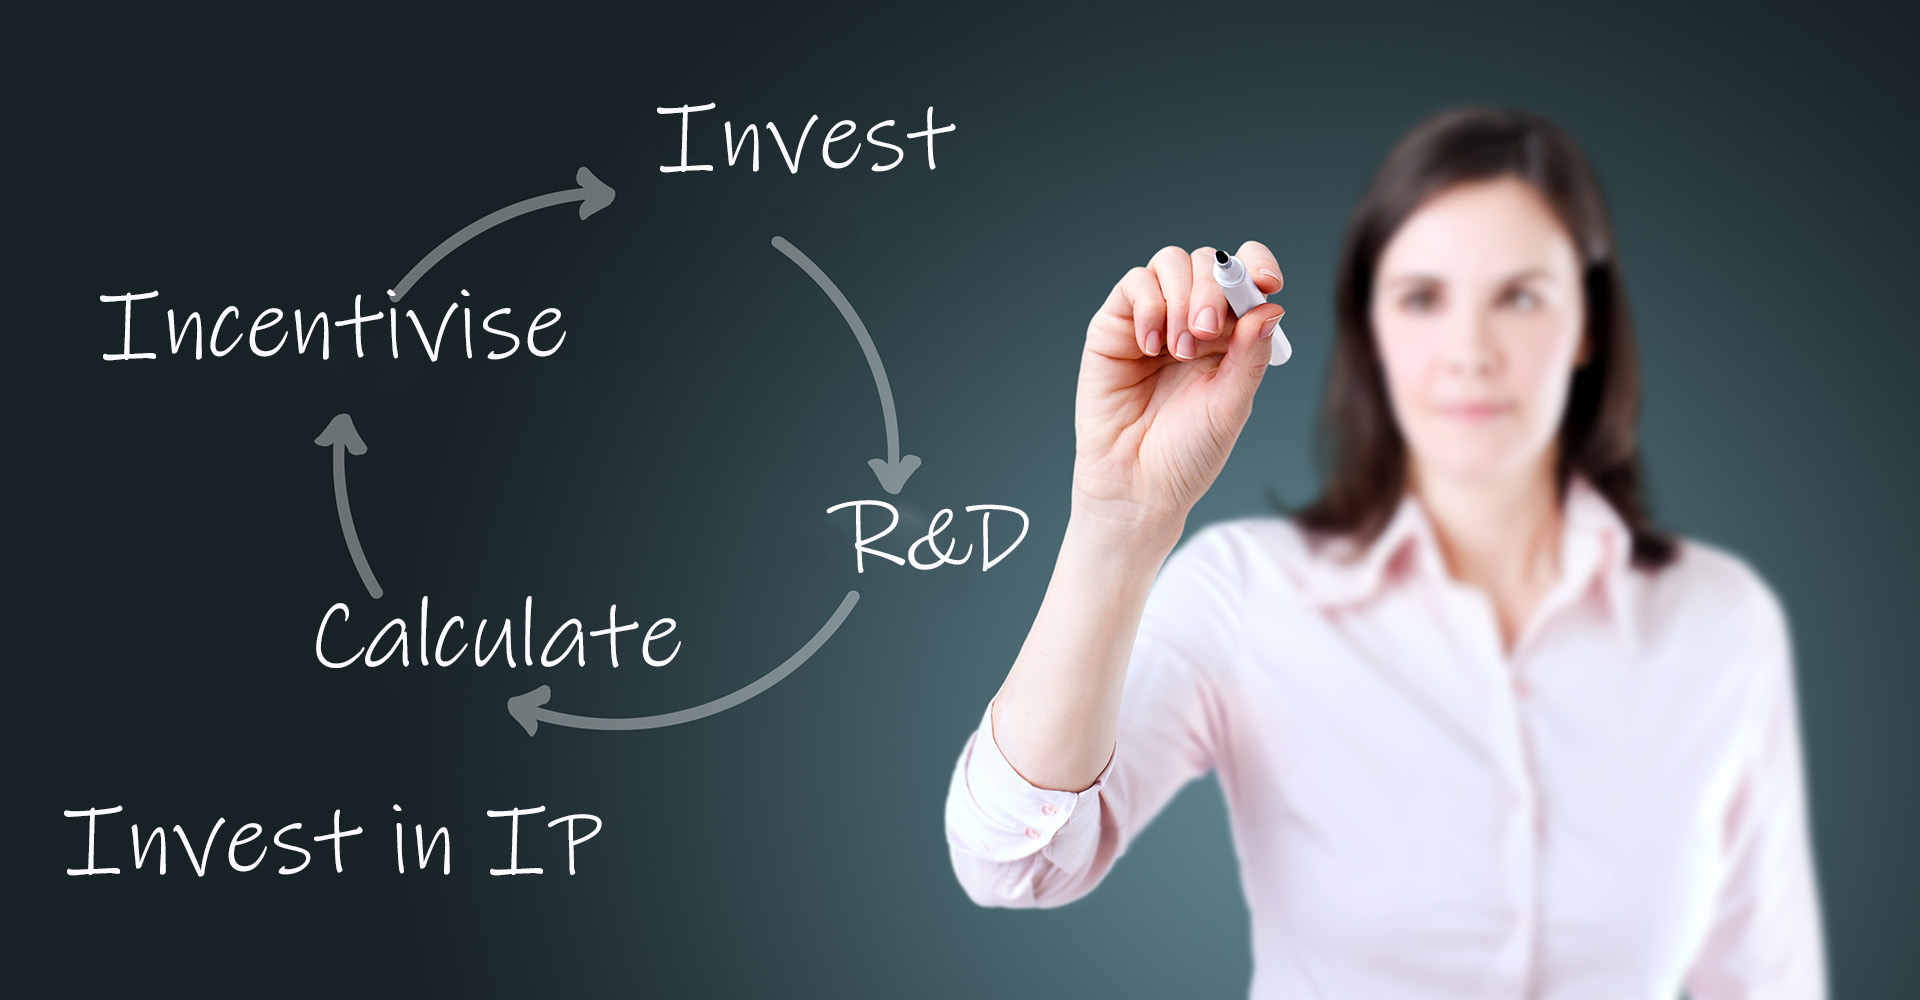 woman writing Invest, Incentivise calculate R&D, Invest in IP on glass board